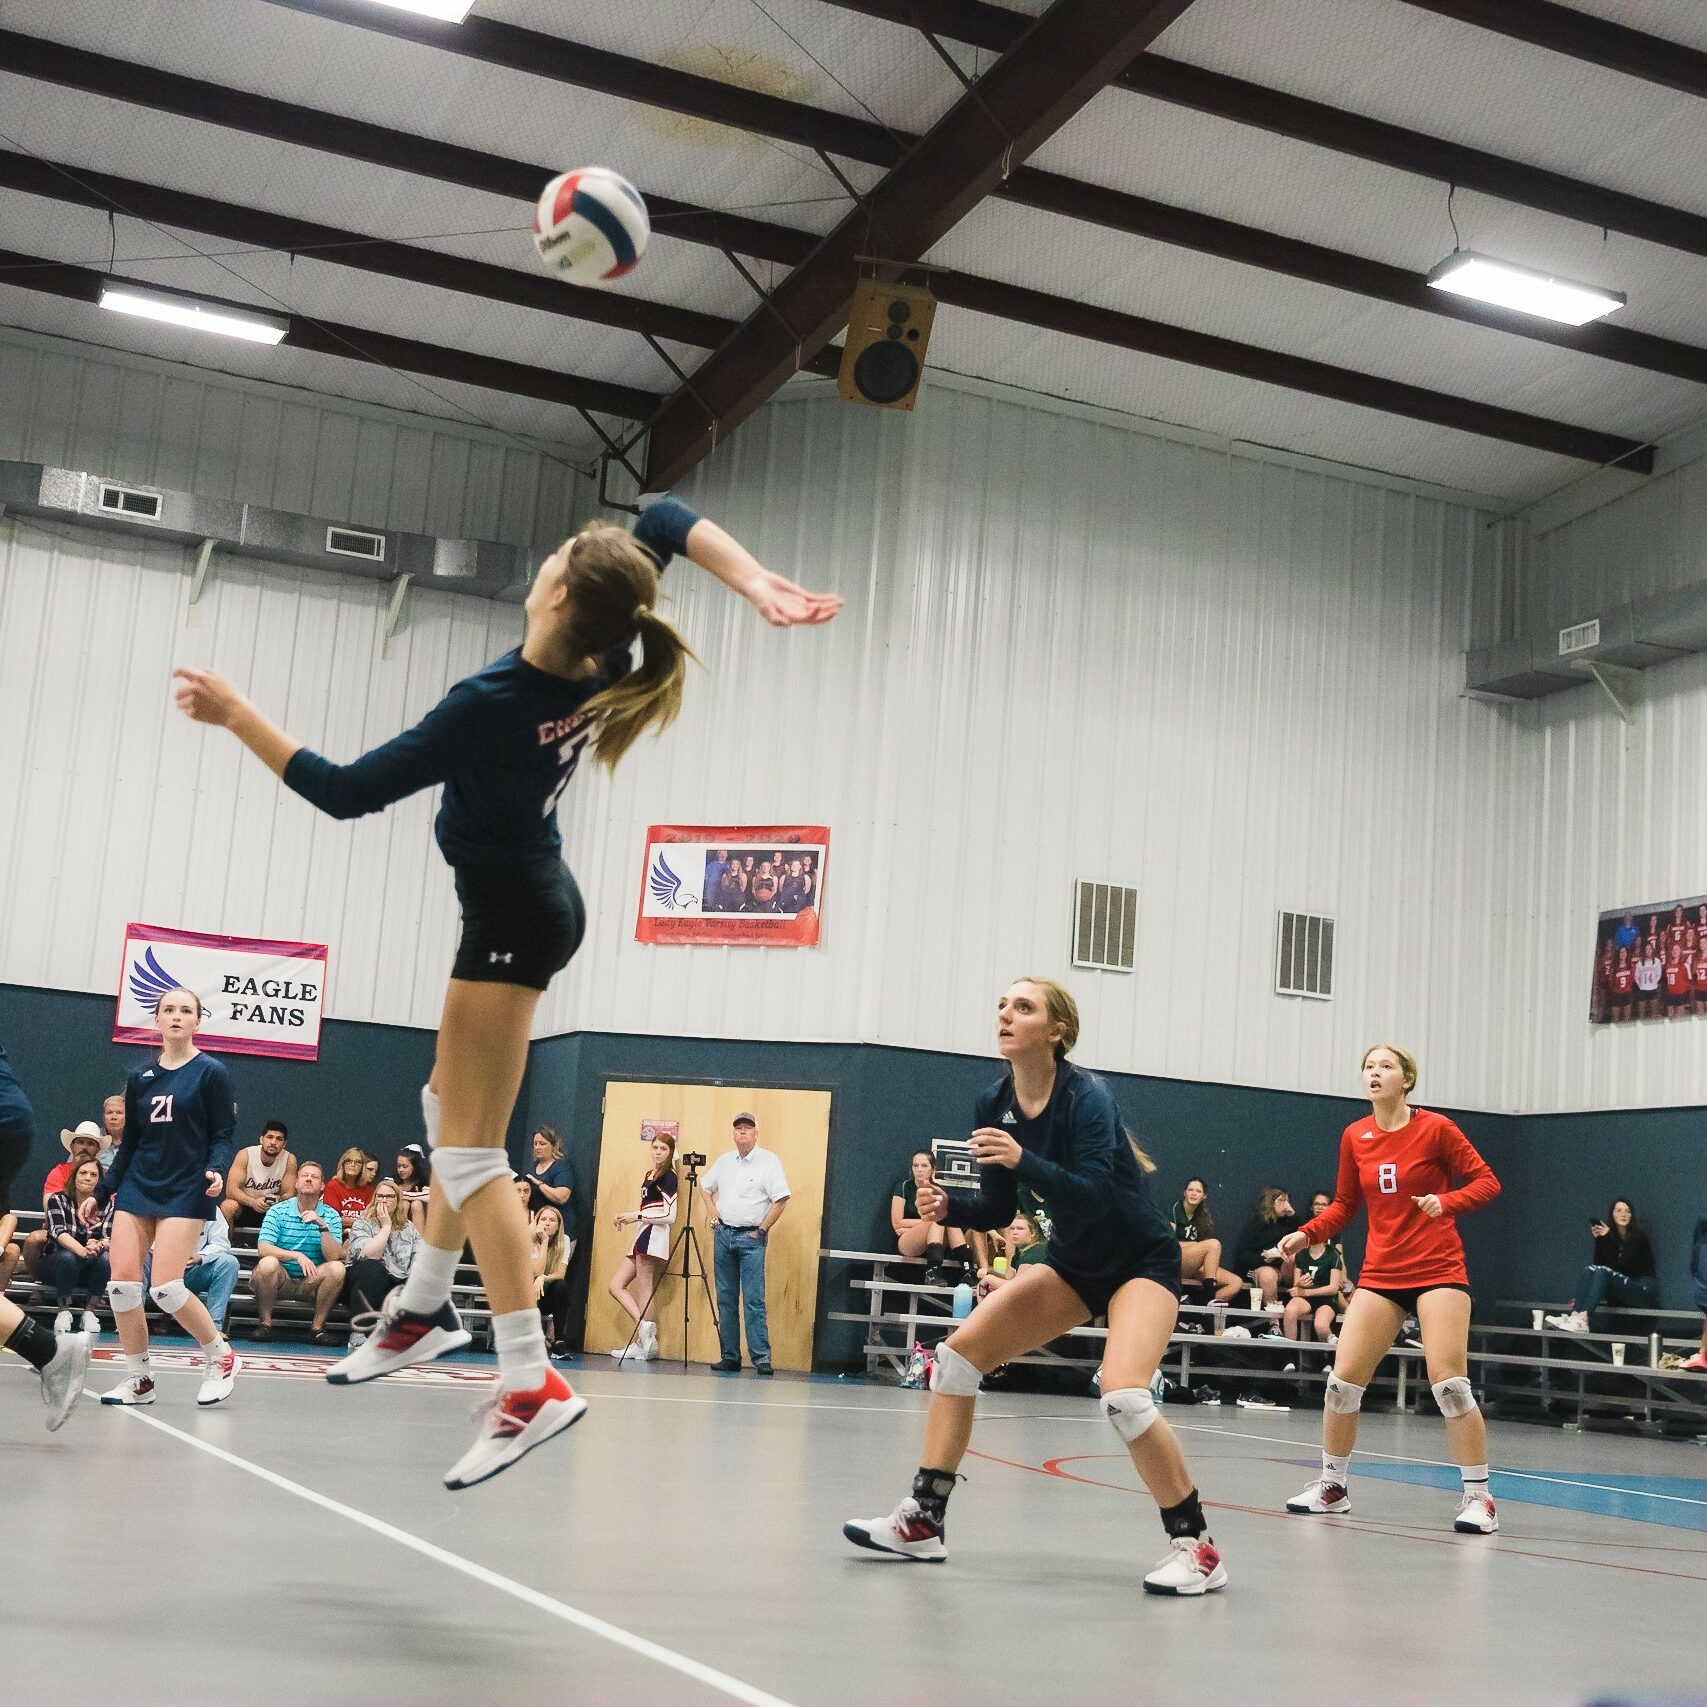 Volleyball action shot